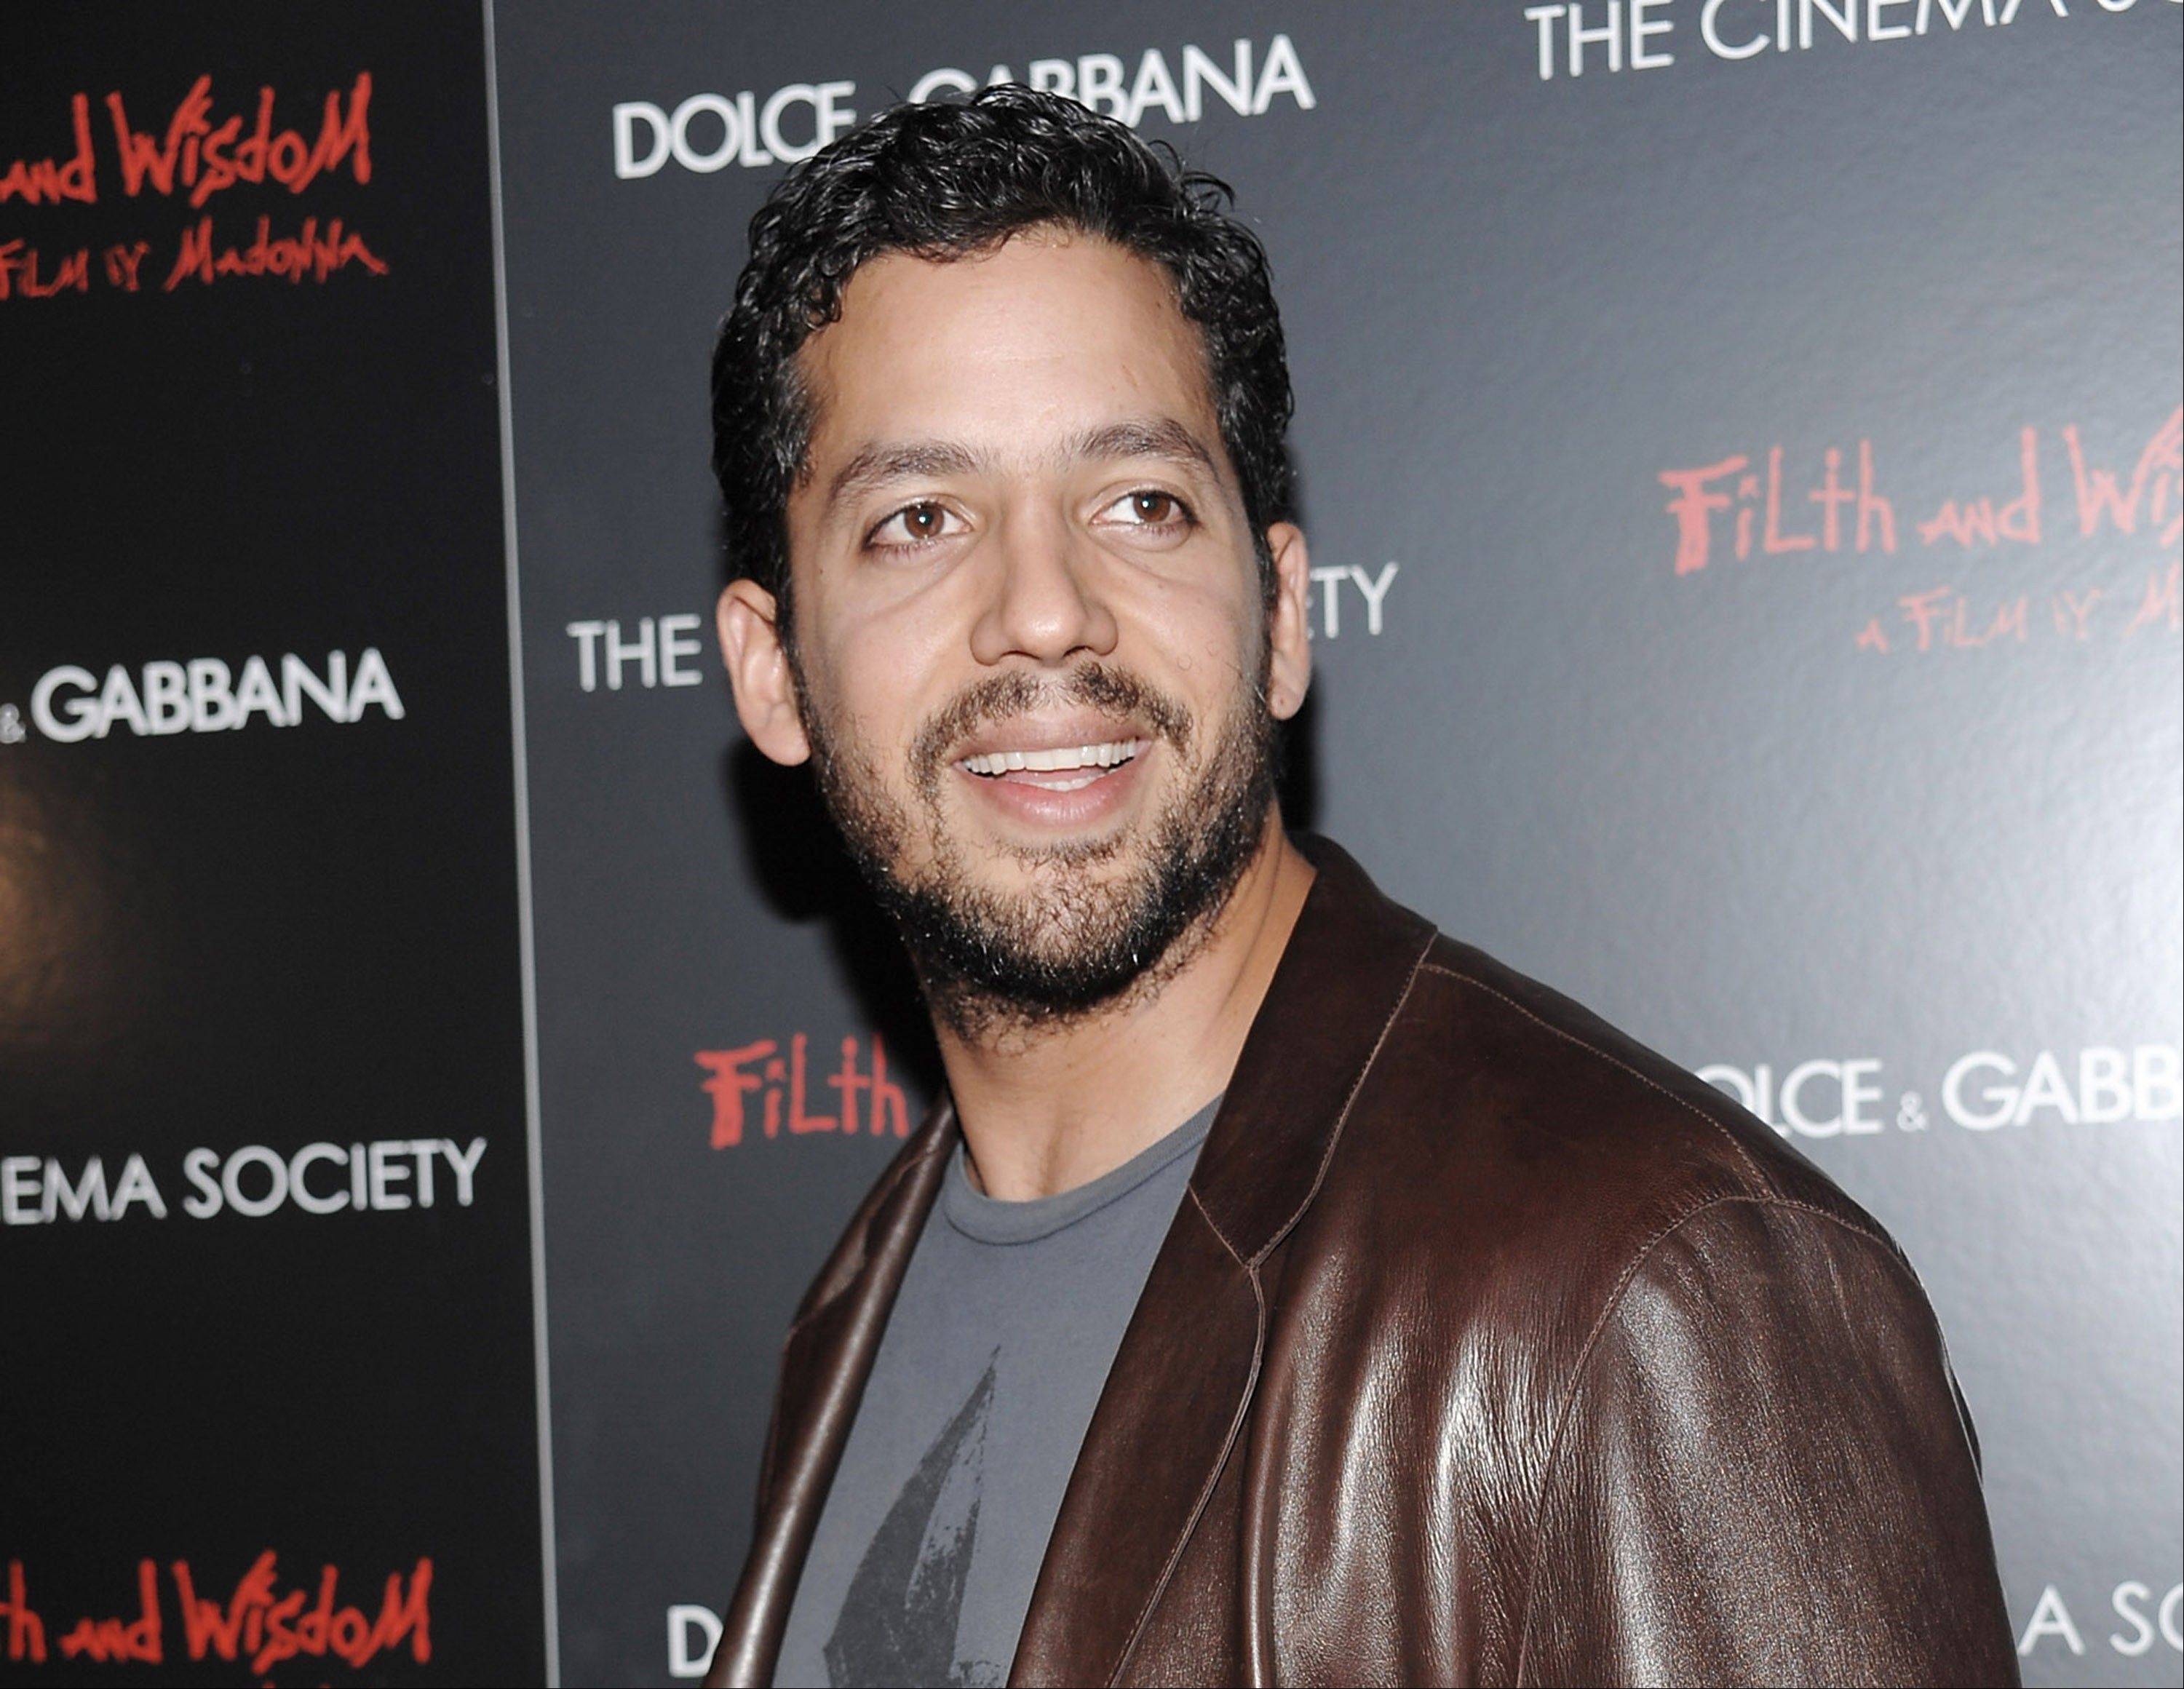 David Blaine is returning to New York City Oct. 5-8 for a three-day, three-night stunt called �Electrified: One Million Volts Always On.� The stunt will be streamed on YouTube and will be open to the public where they can type messages to Blaine, control the electricity around him and basically help keep the magician alert.